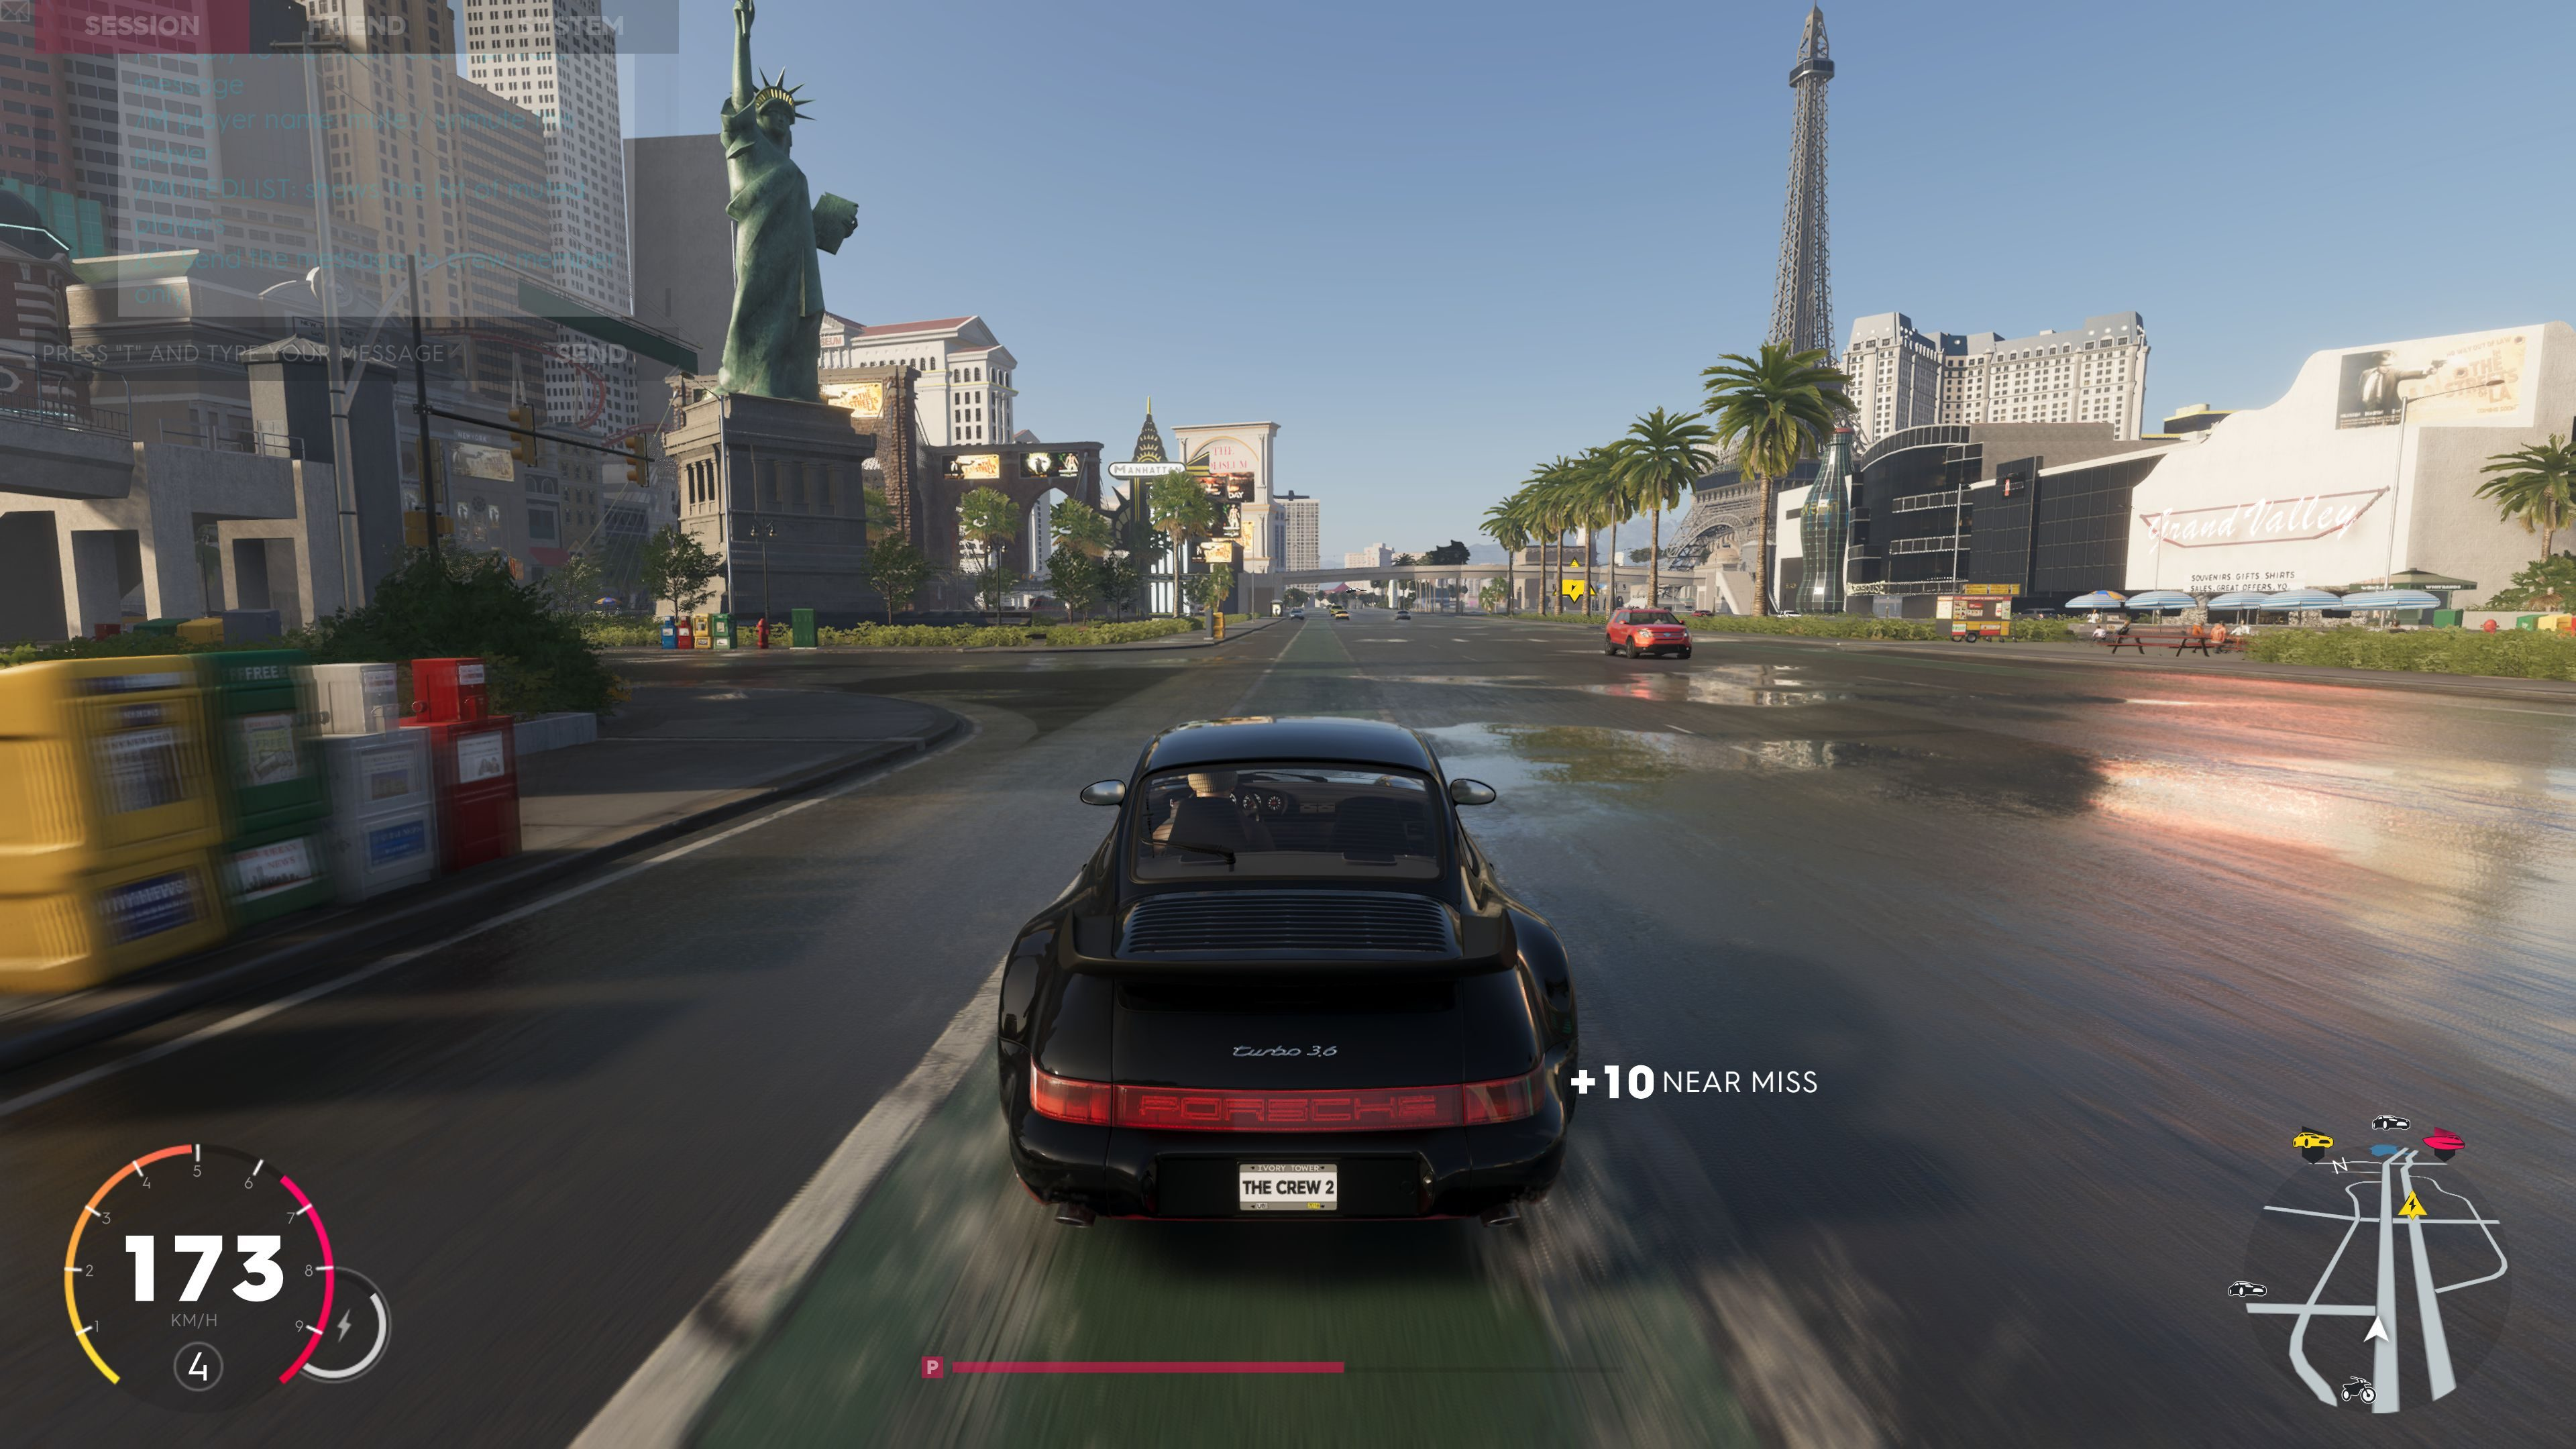 Image 2 : Test : The Crew 2, analyse des performances sur 14 GPU